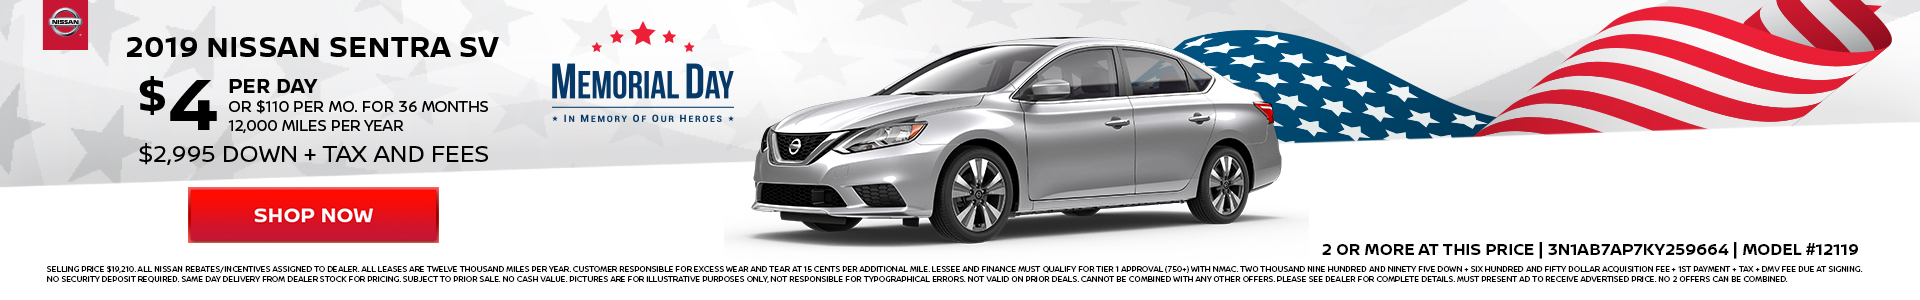 Nissan Sentra $4 Lease